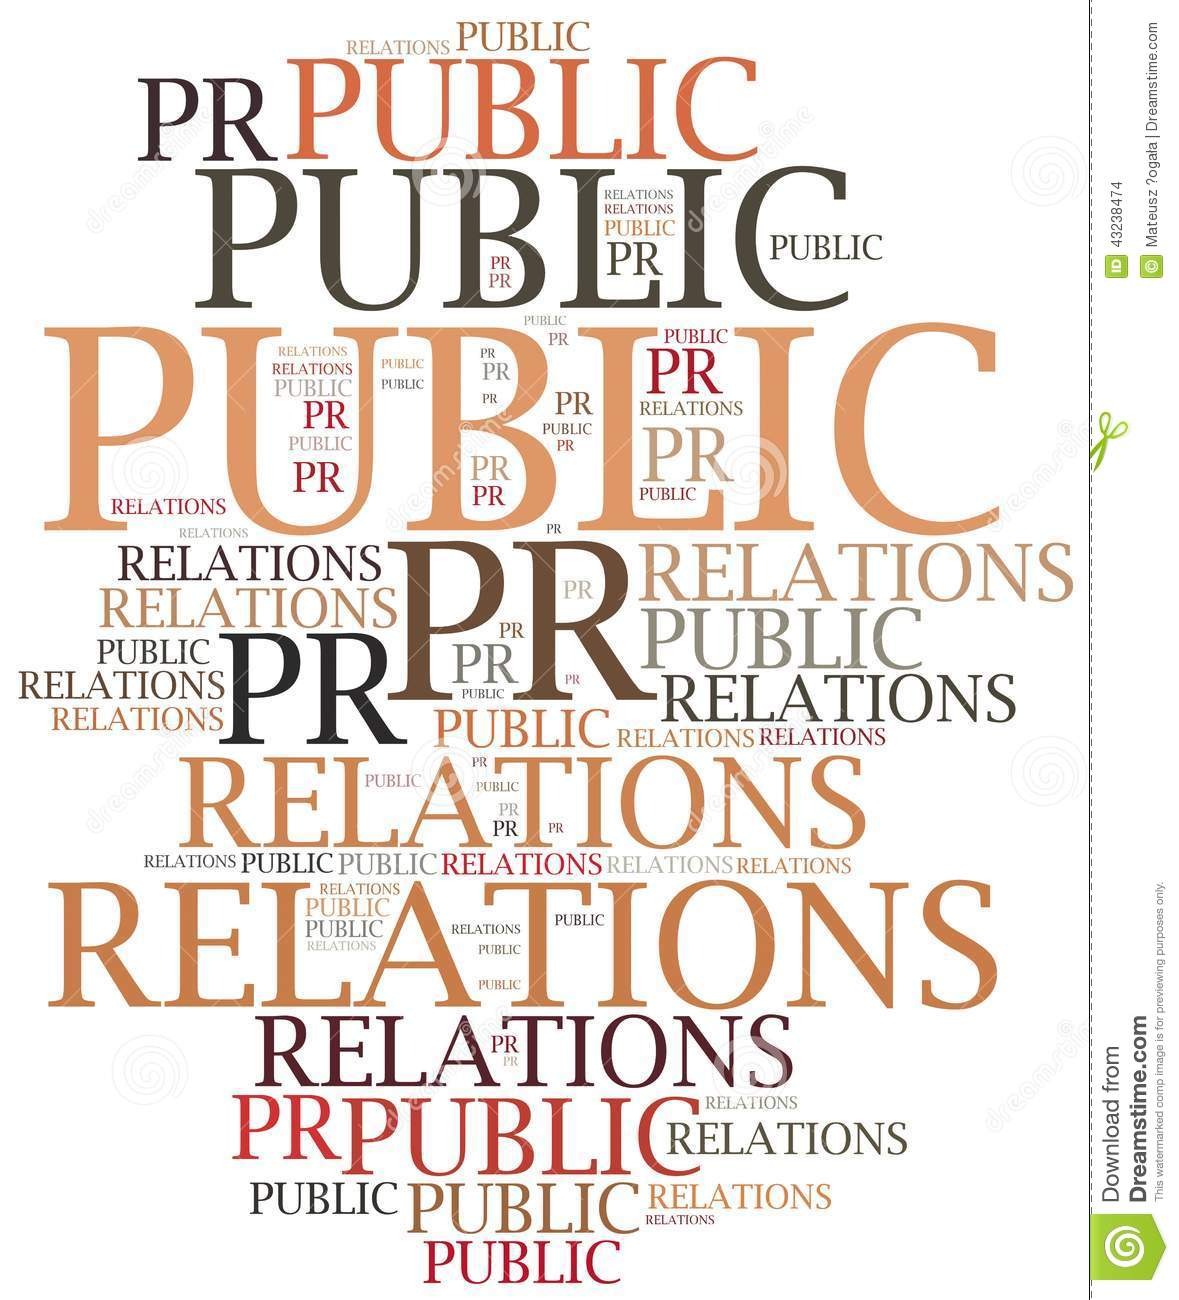 Public Relations what is major